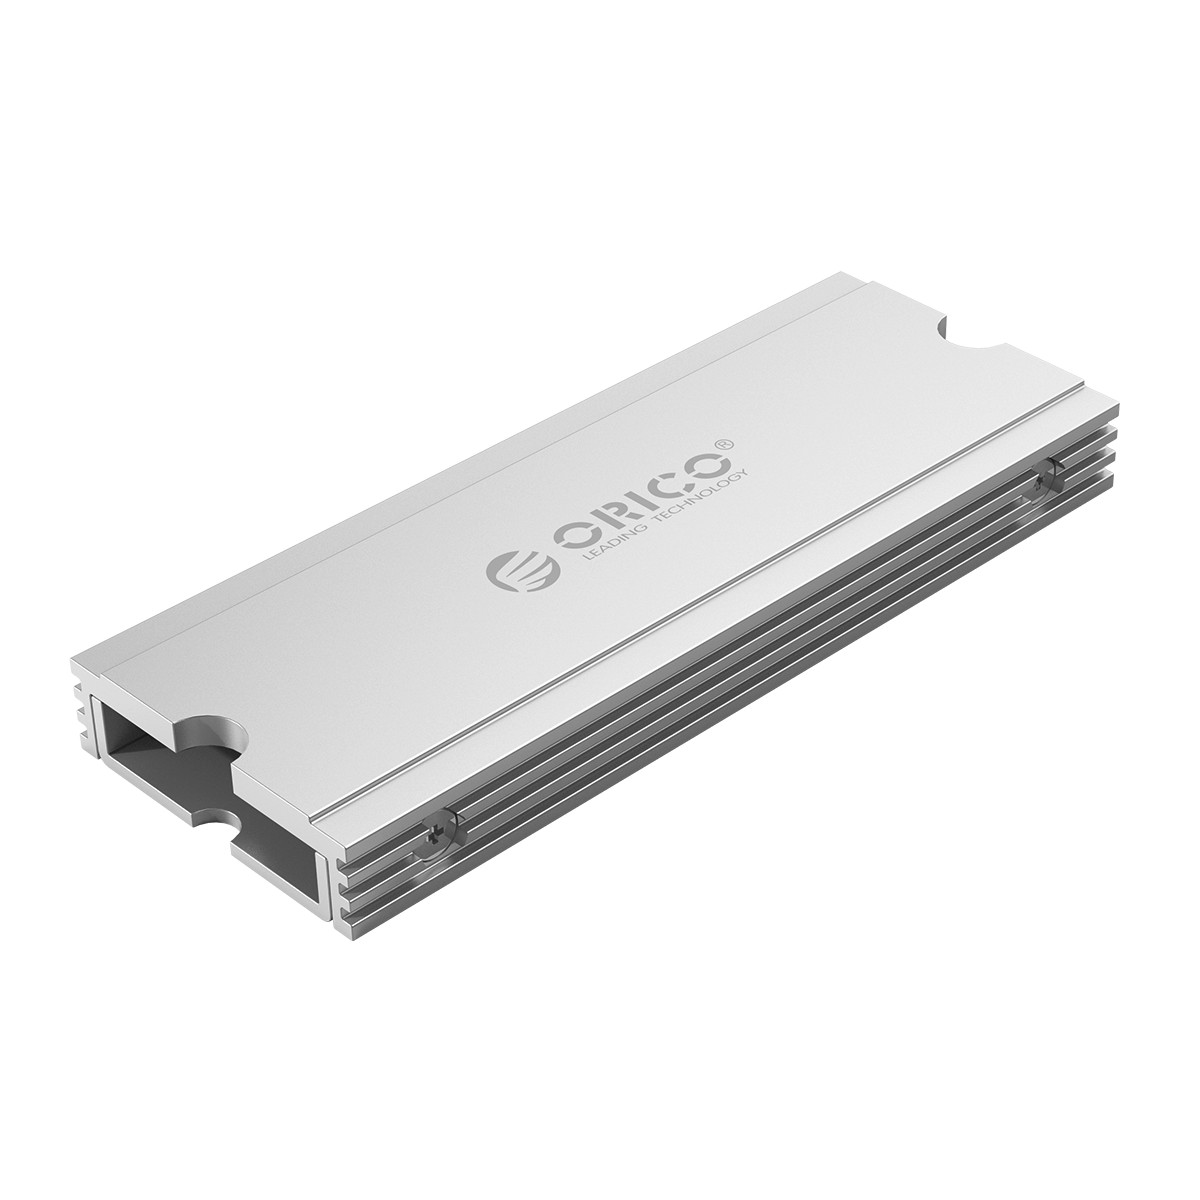 ORICO M.2 Aluminum Heat Sink Universal compatibility Double side Thermal Pad